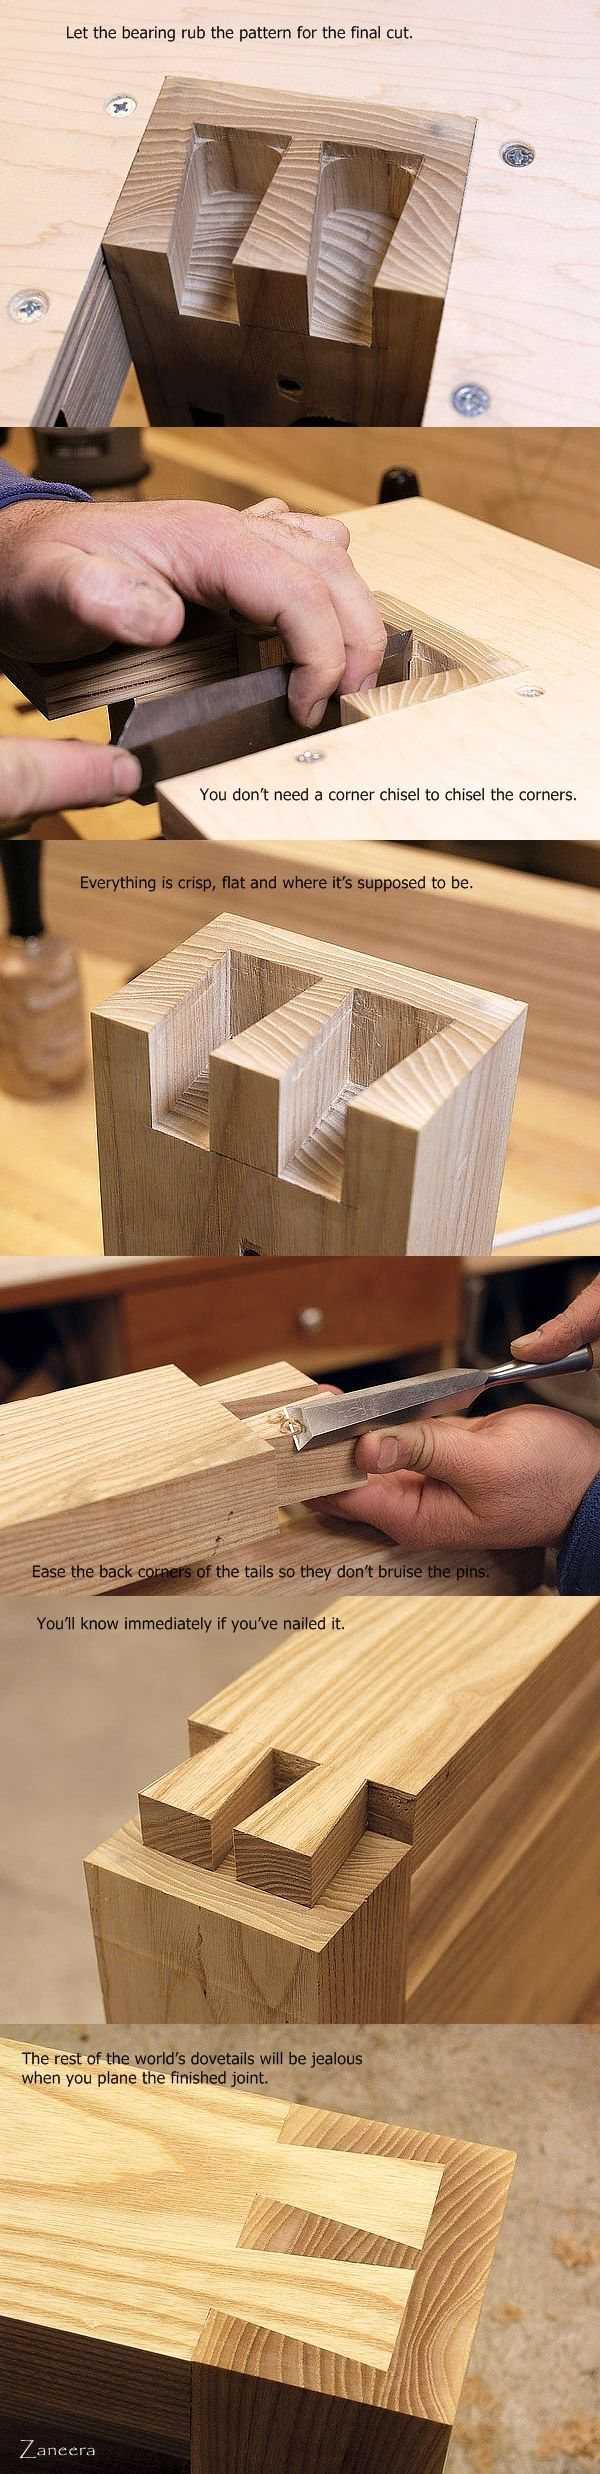 Dovetails Step by Step. Part 4 : Finishing. - My Saws And Jigs